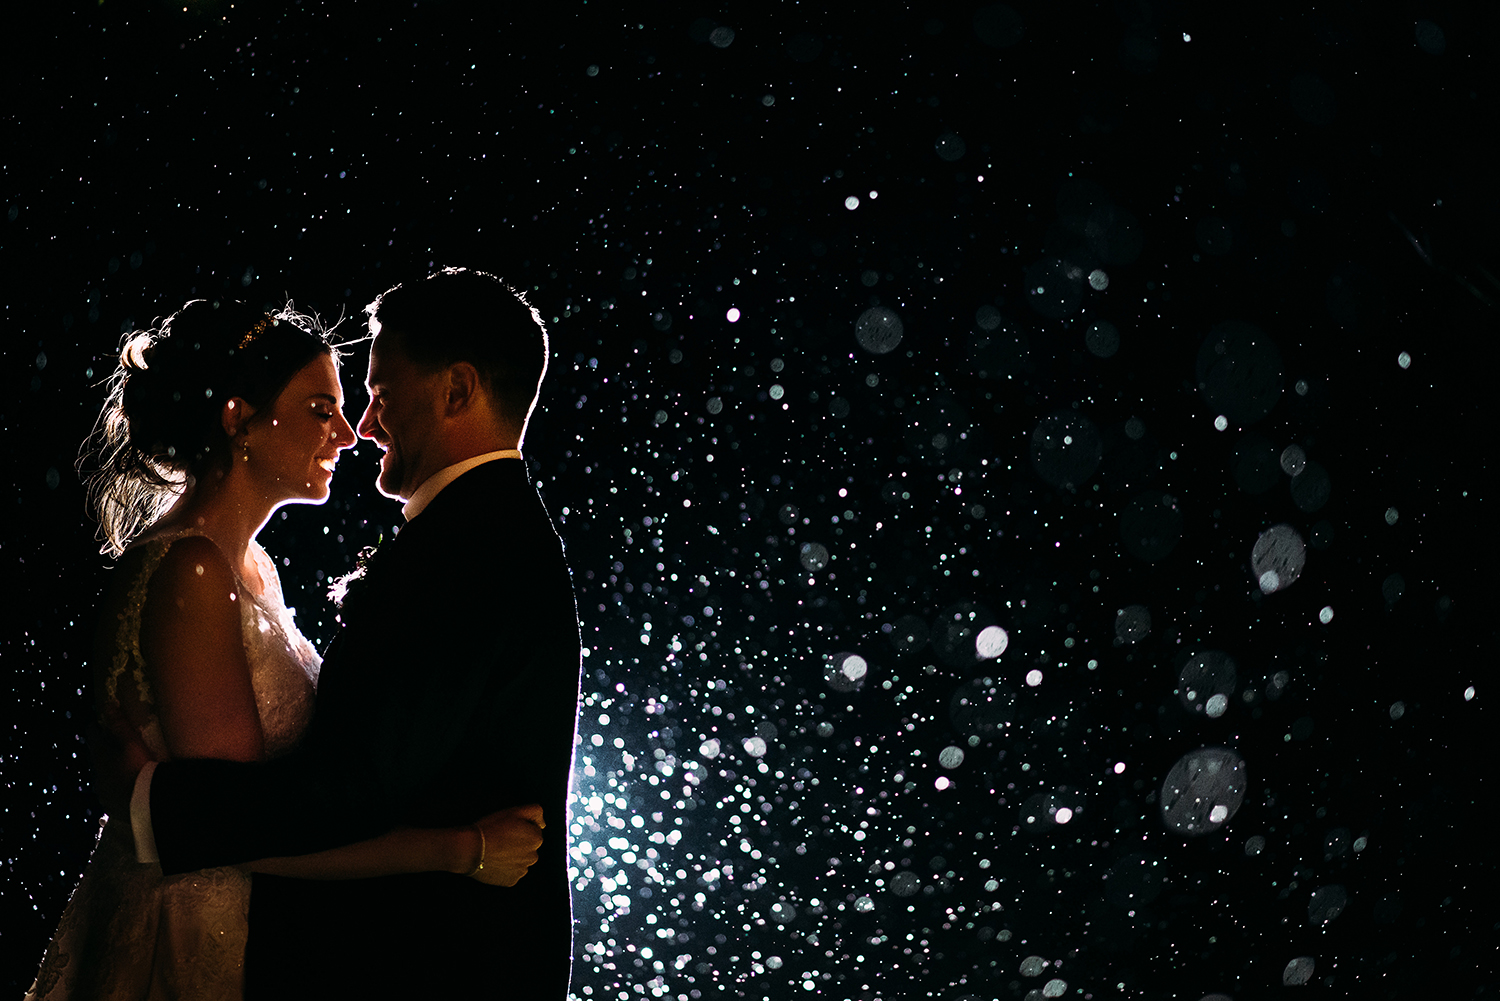 Night time portrait of the bride and groom in the rain at night